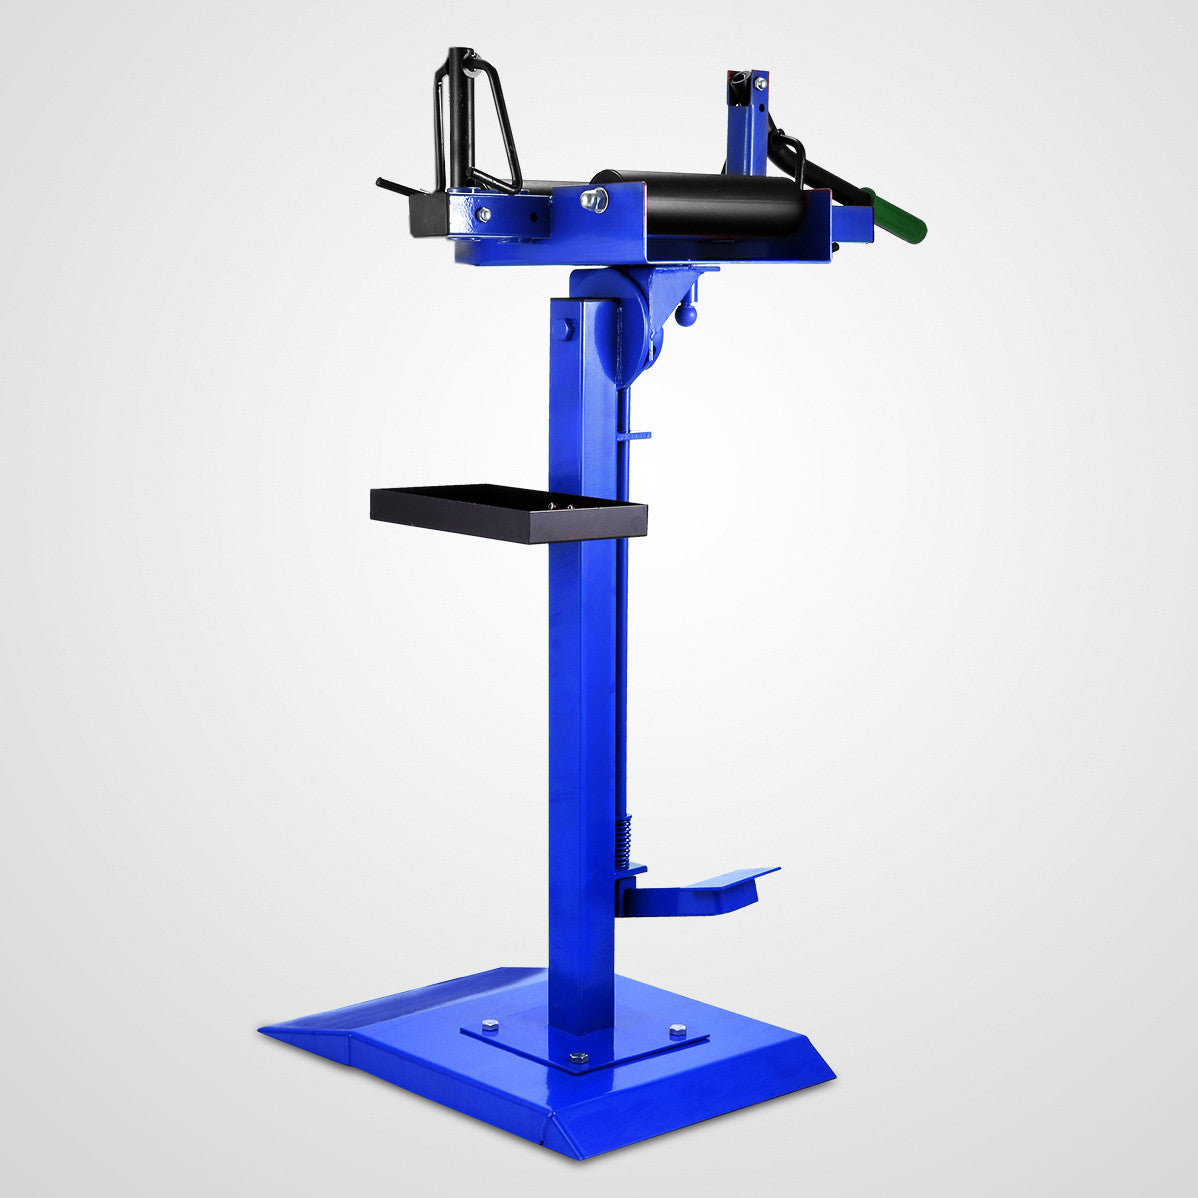 Heavy Duty Tire Changer Tire Spreader With Stand Adjustable Tire Changer